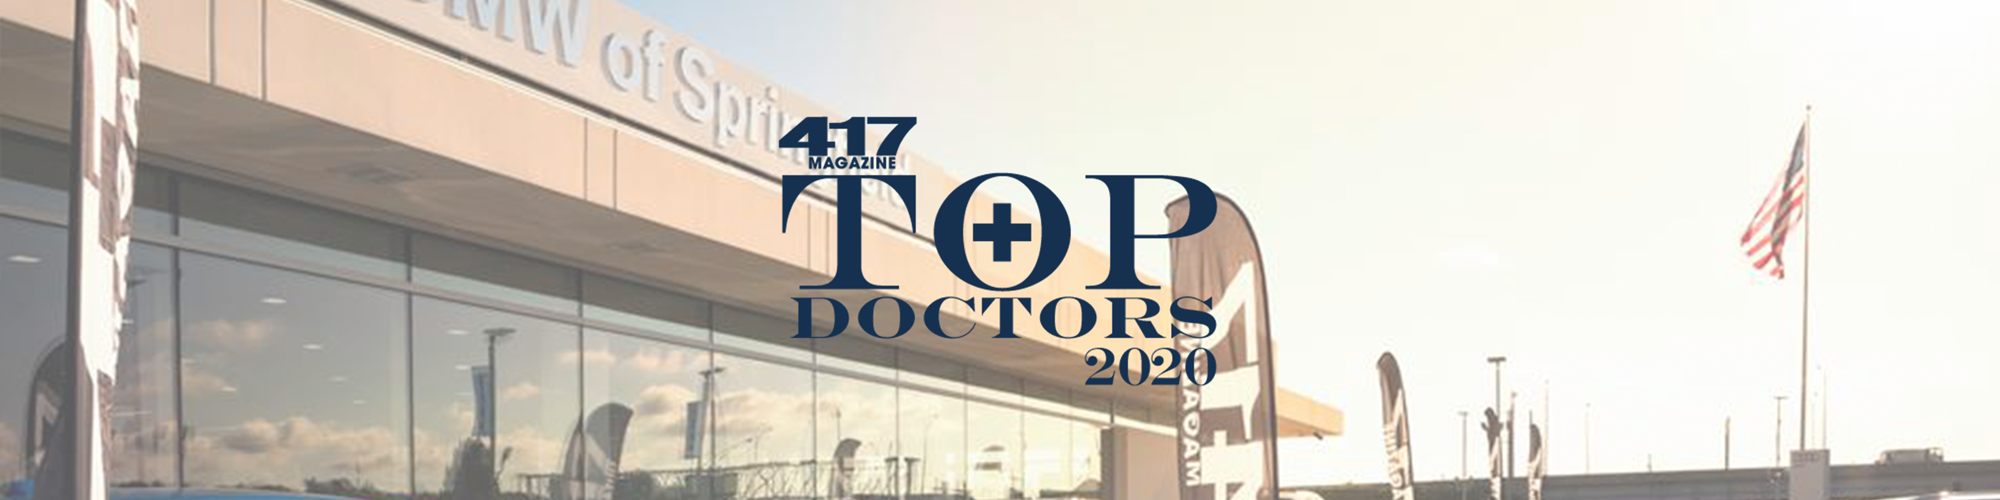 RSVP to the 2020 Top Doctors Reception